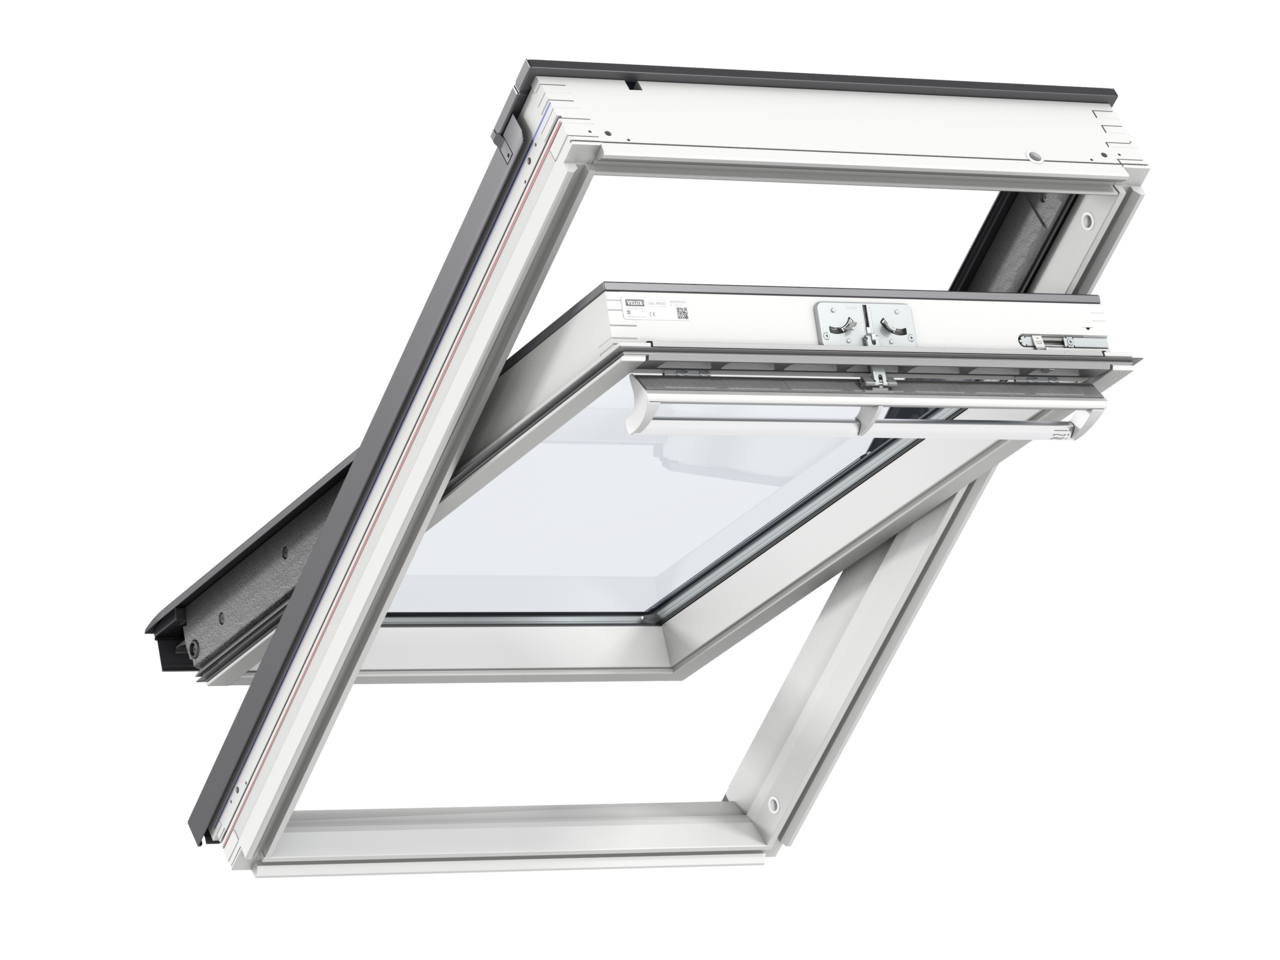 Velux GGL PK10 940 x 1600mm Centre Pivot 66 Pane Roof Window - White Painted